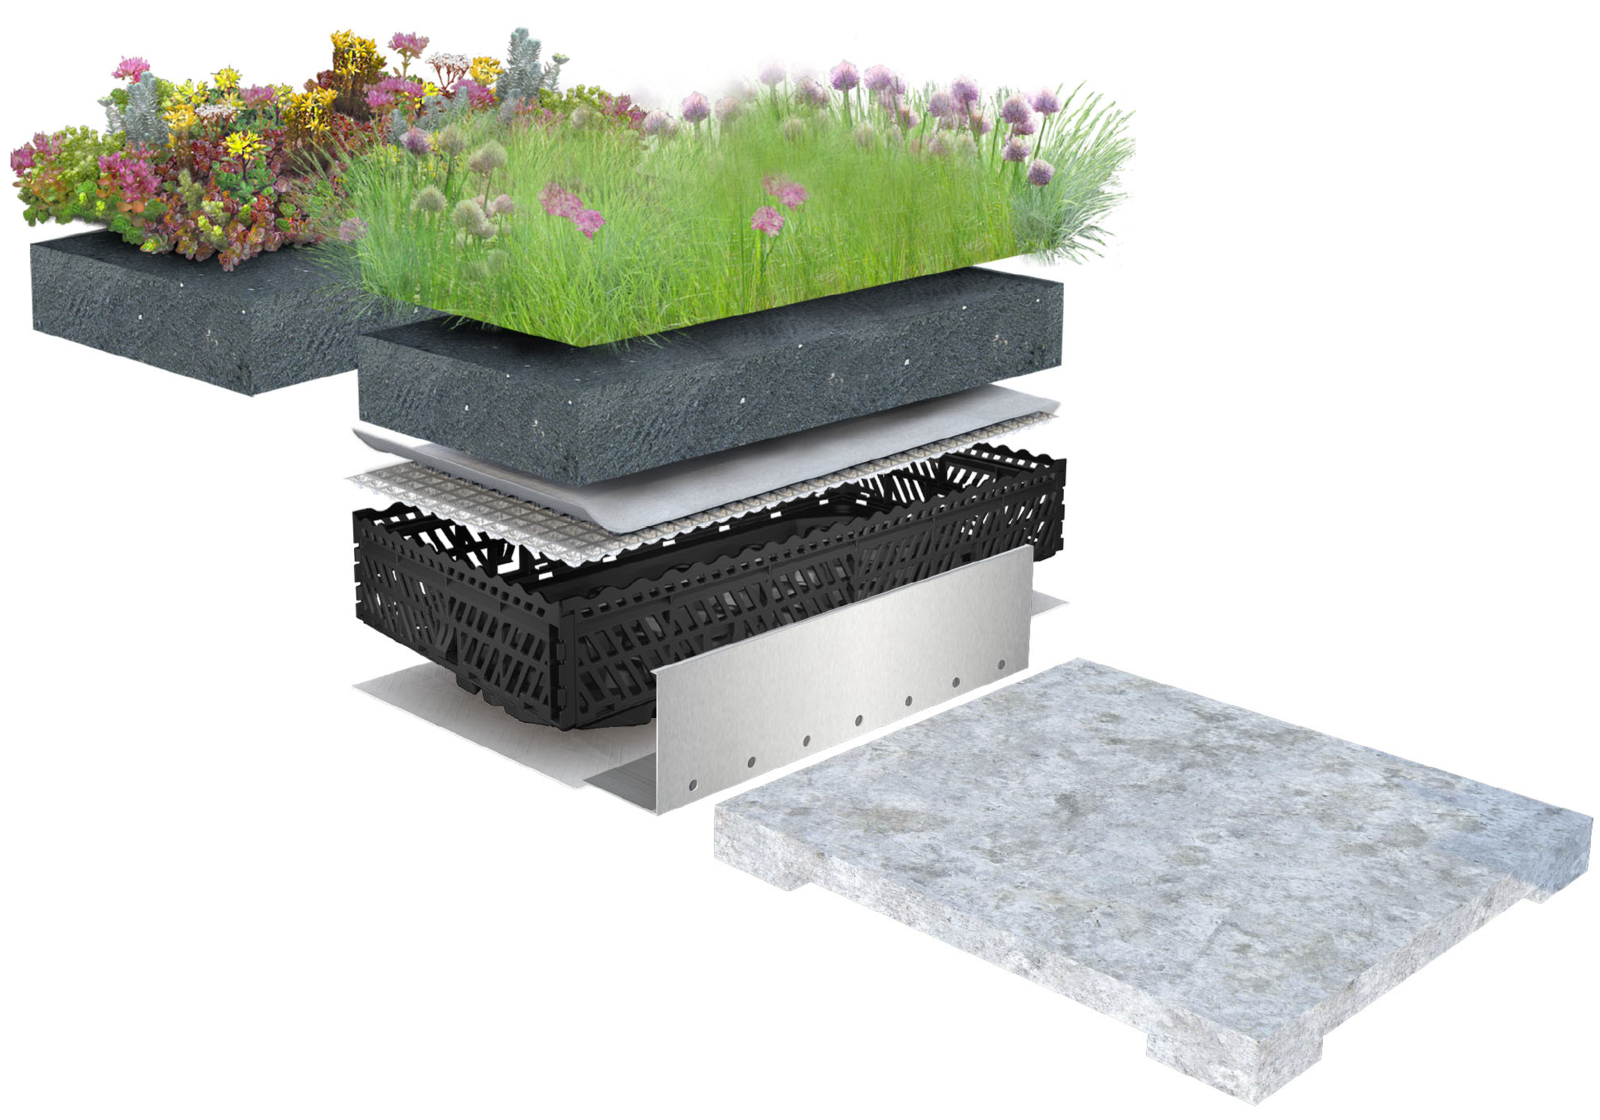 Top Considerations For Vegetated Green Roof Designs